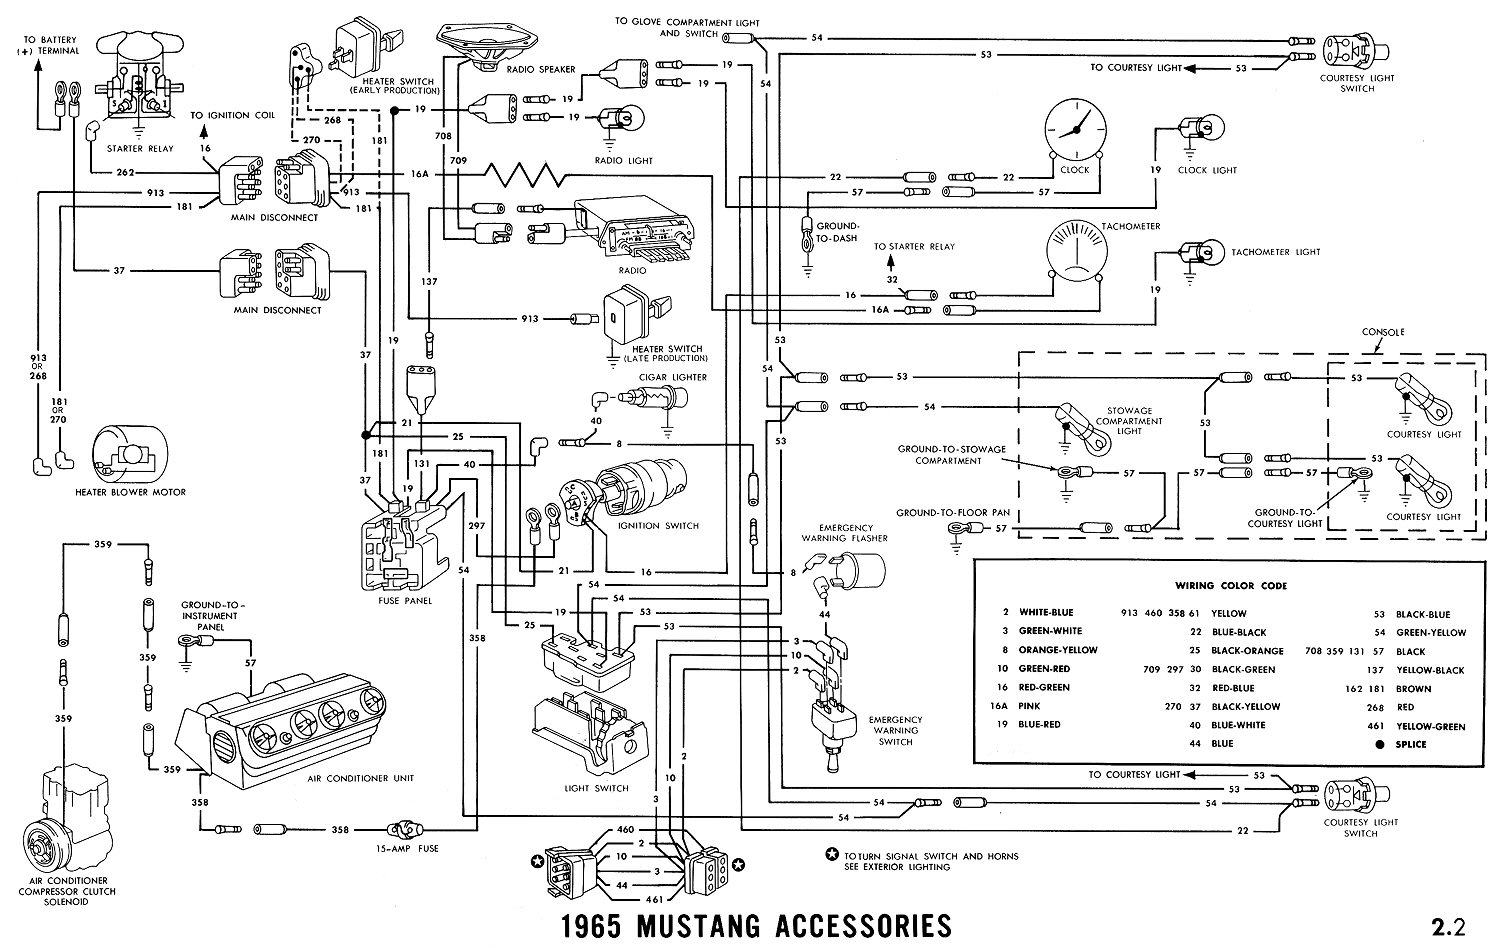 1965 Mustang Wiring Diagrams Average Joe Restoration Amp Gauge Diagram Delco Alternator Air Conditioner